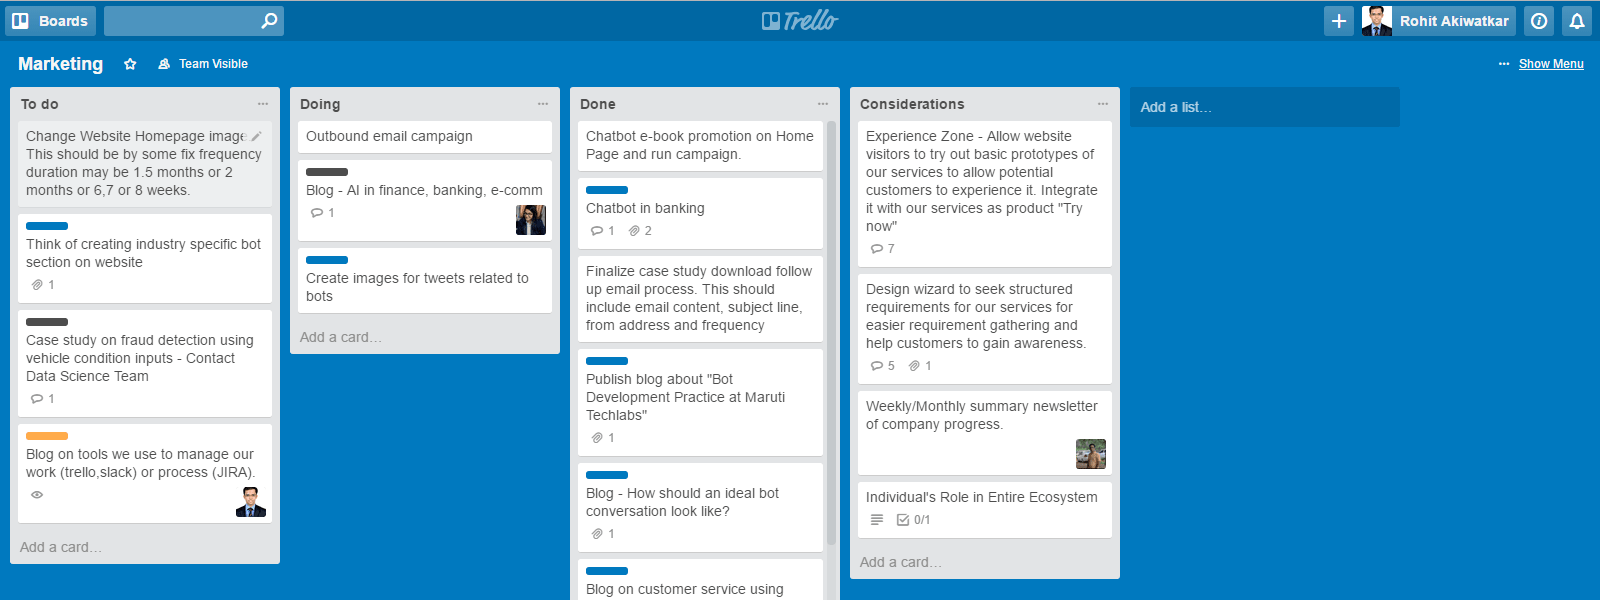 Maruti Techlabs Marketing board Trello